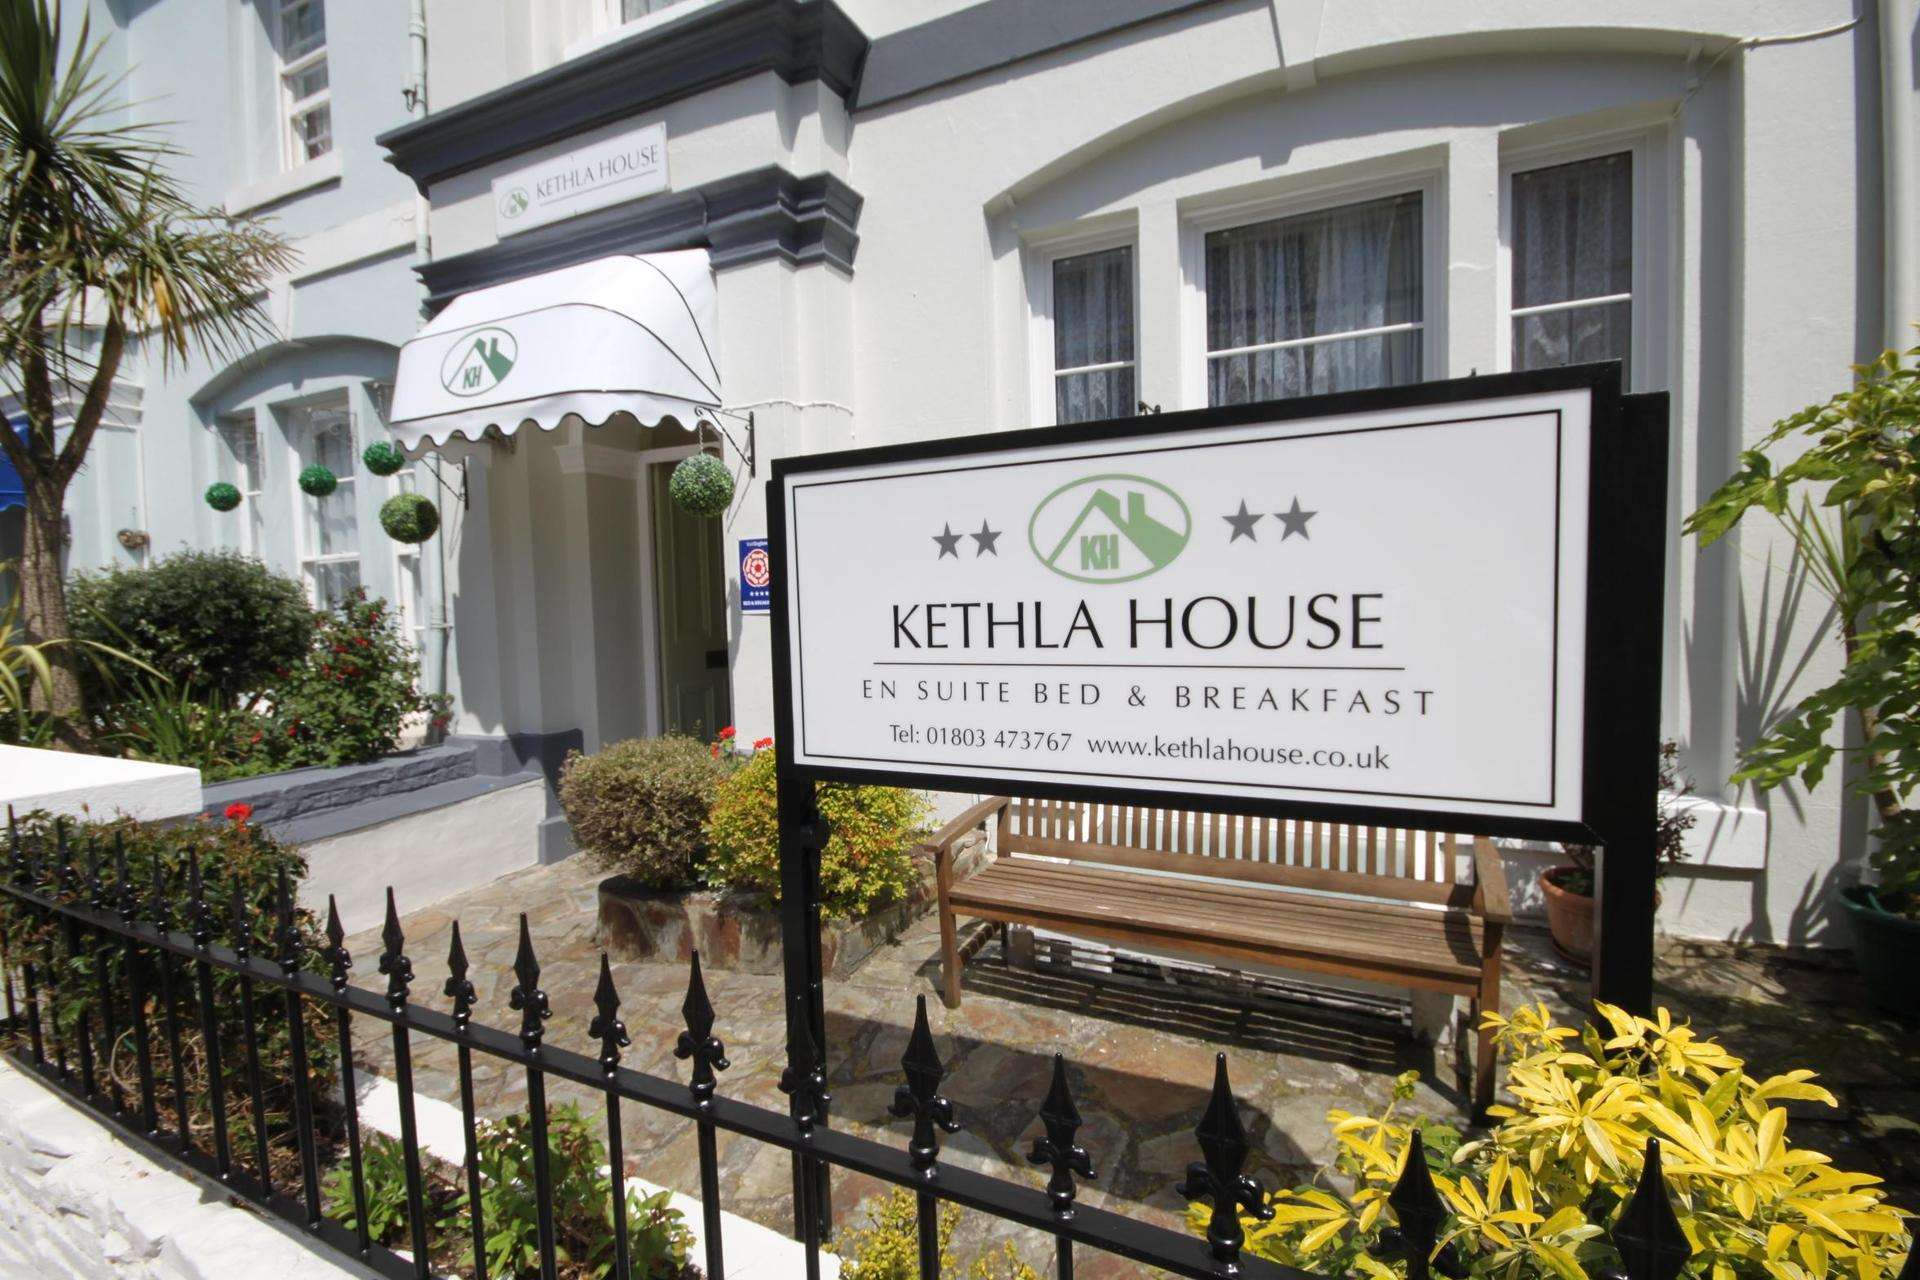 Kethla House Hotel in Torquay